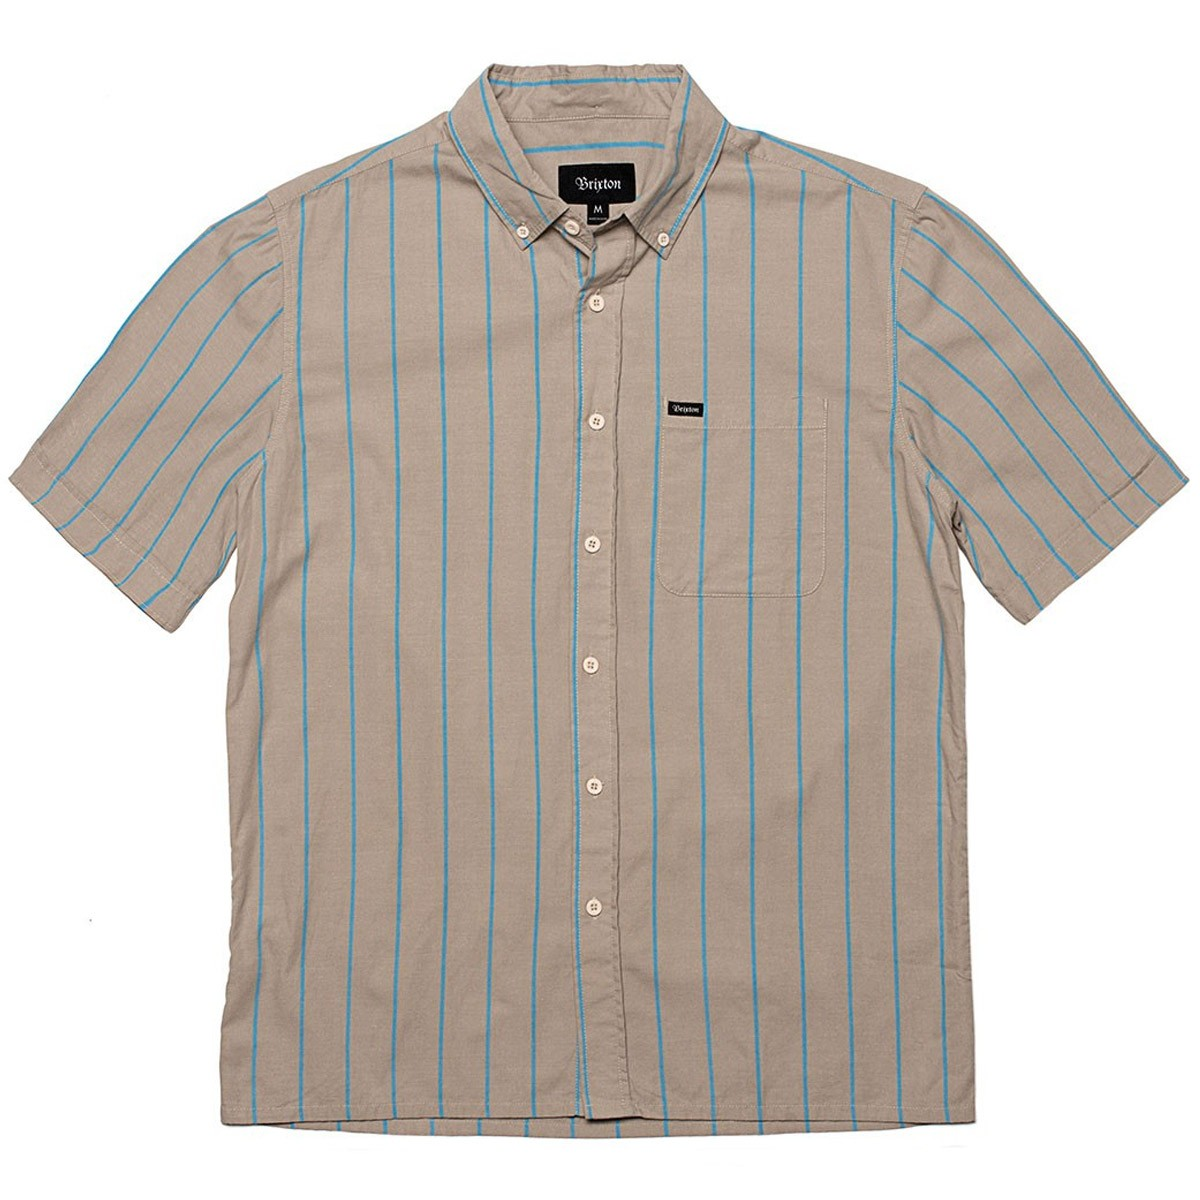 Brixton Cadet Short Sleeve Woven Shirt - Grey/Blue